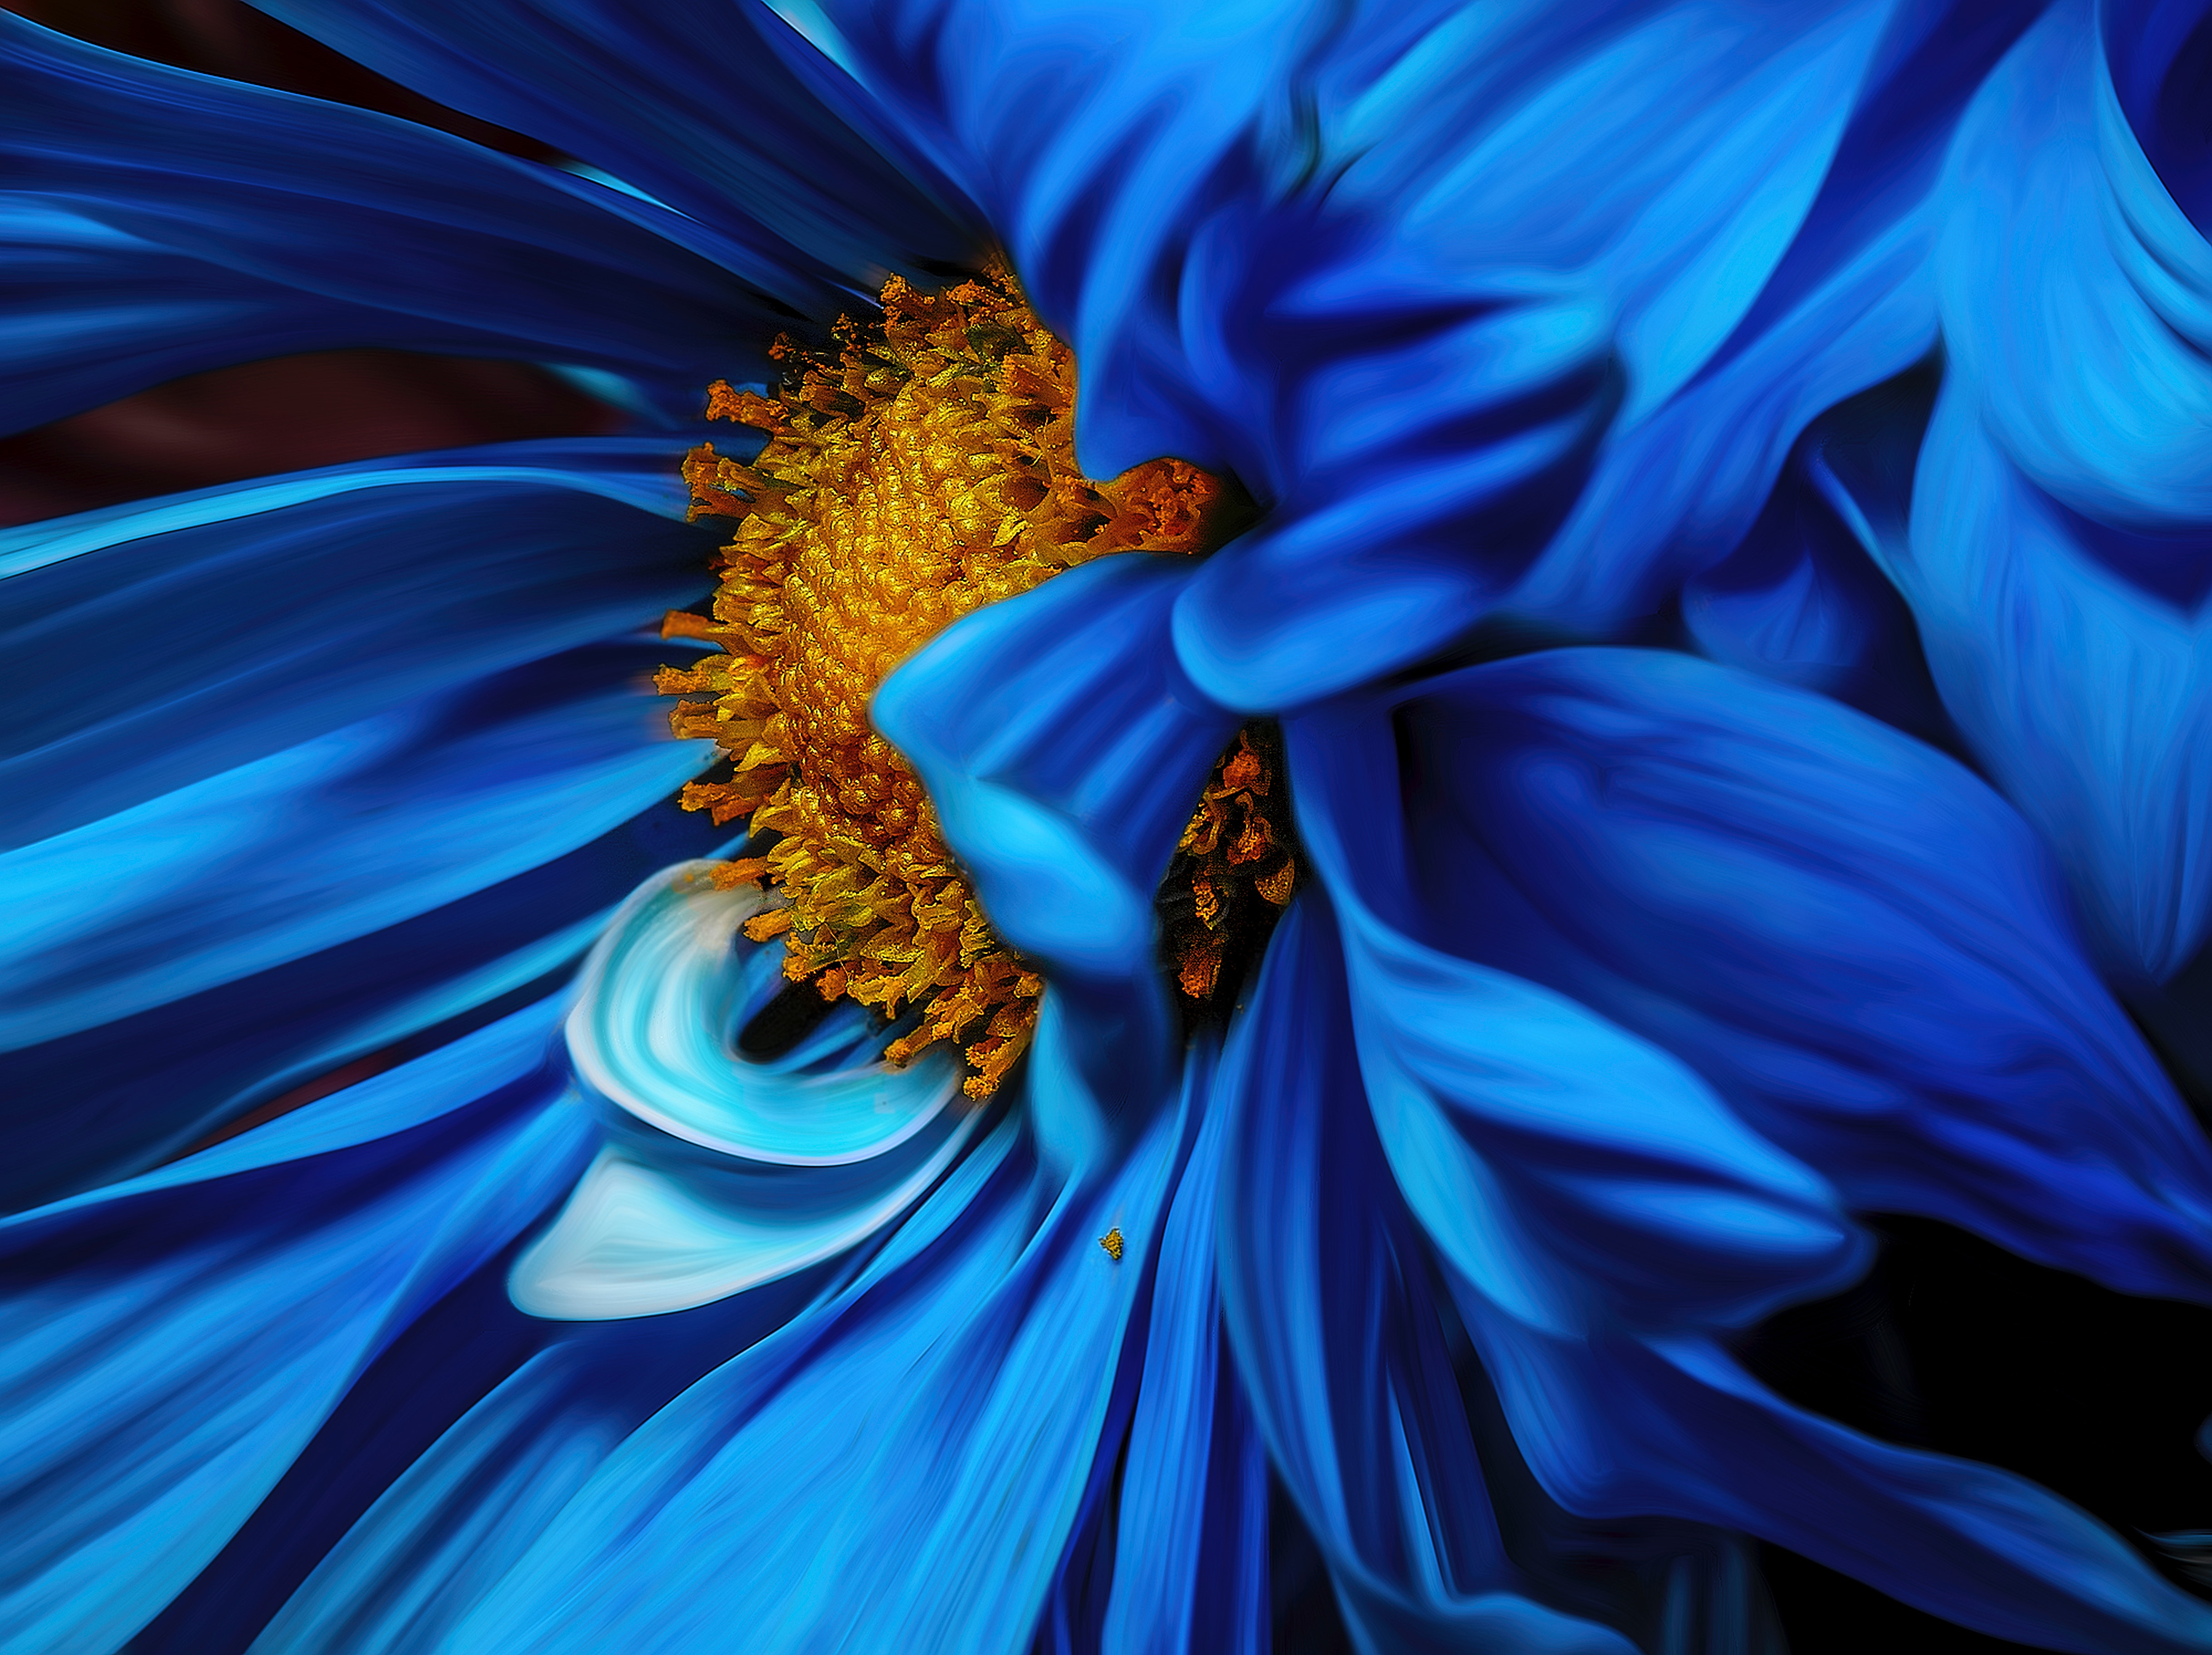 1000 great blue flowers photos pexels free stock photos related searches flowers blue izmirmasajfo